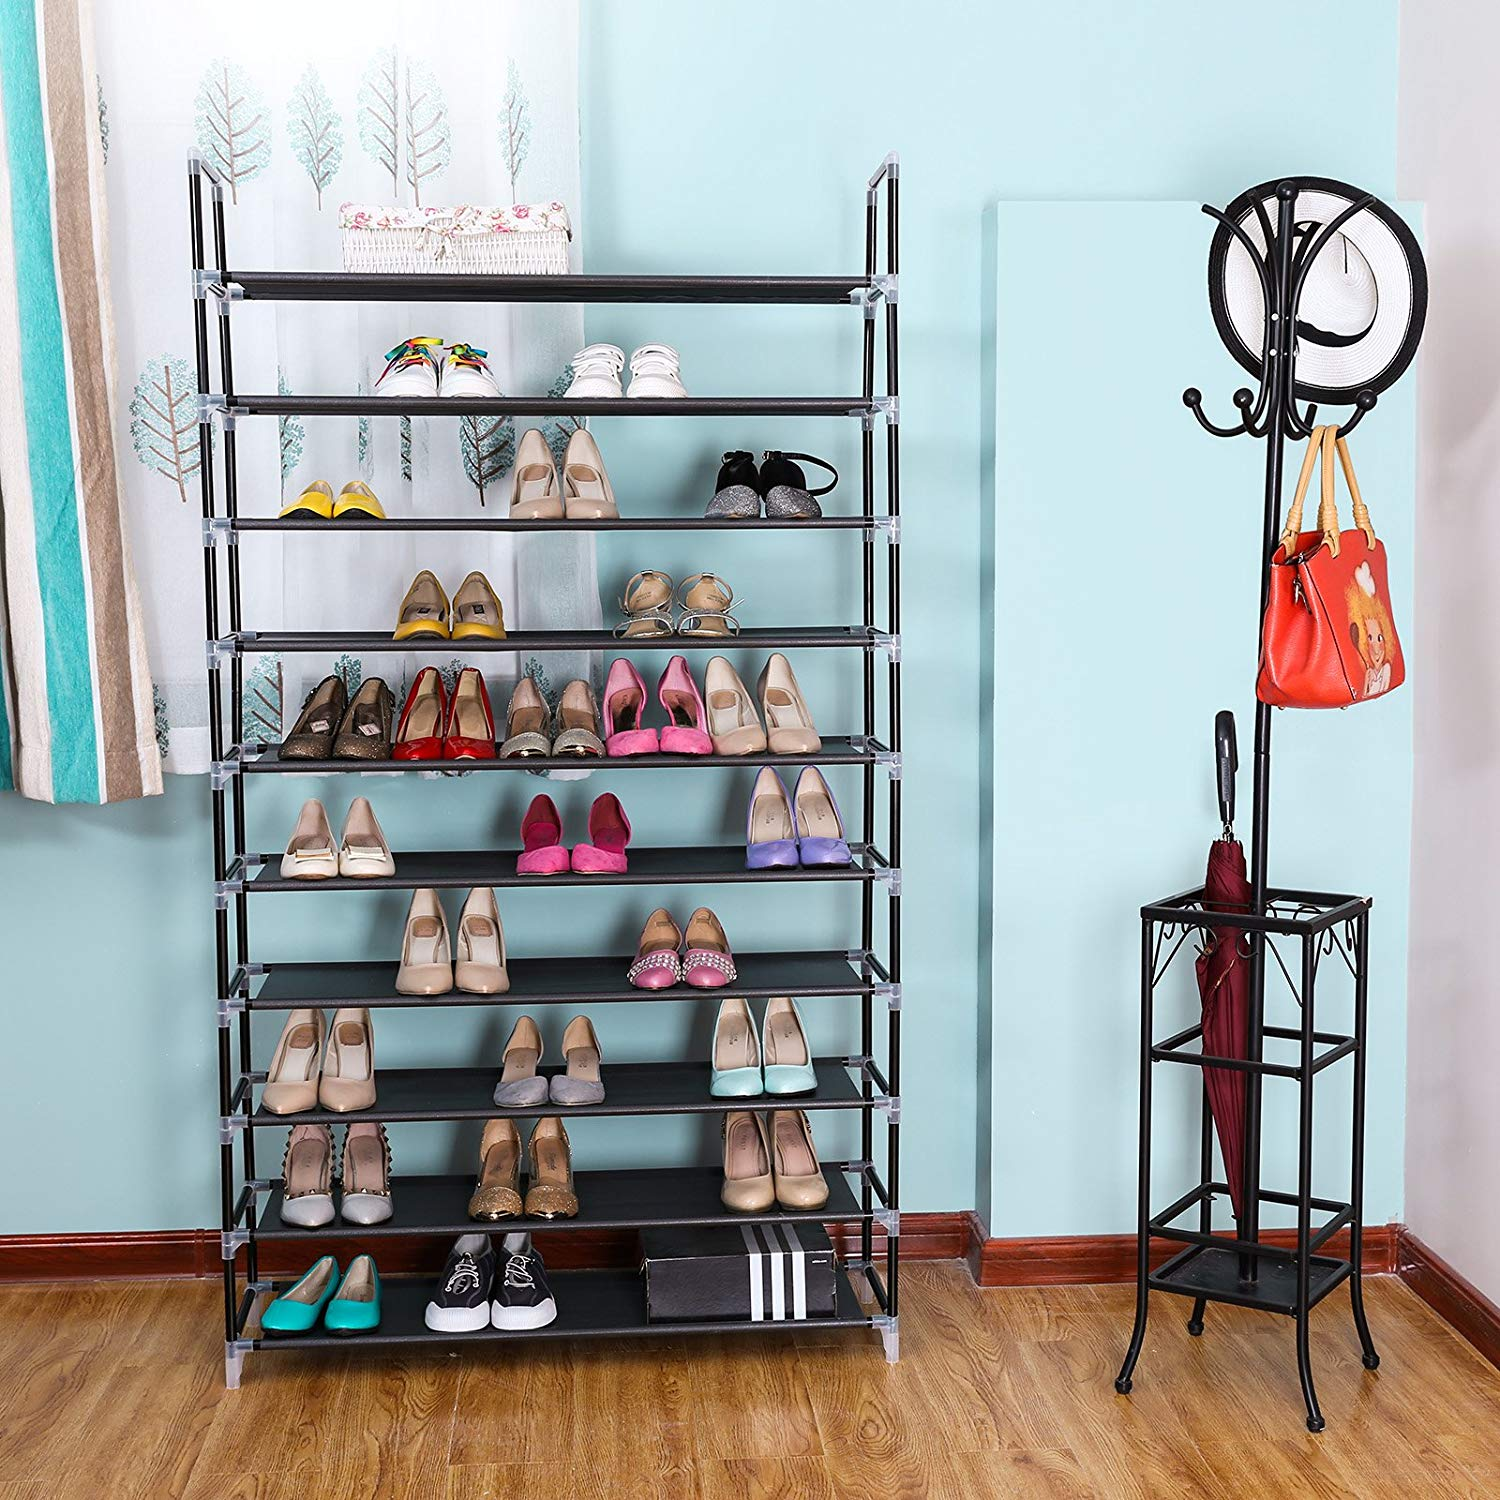 Zimtown 10 Tiers Shoe Rack 50 Pairs Non-woven Fabric Shoe Tower Organizer Cabinet Black